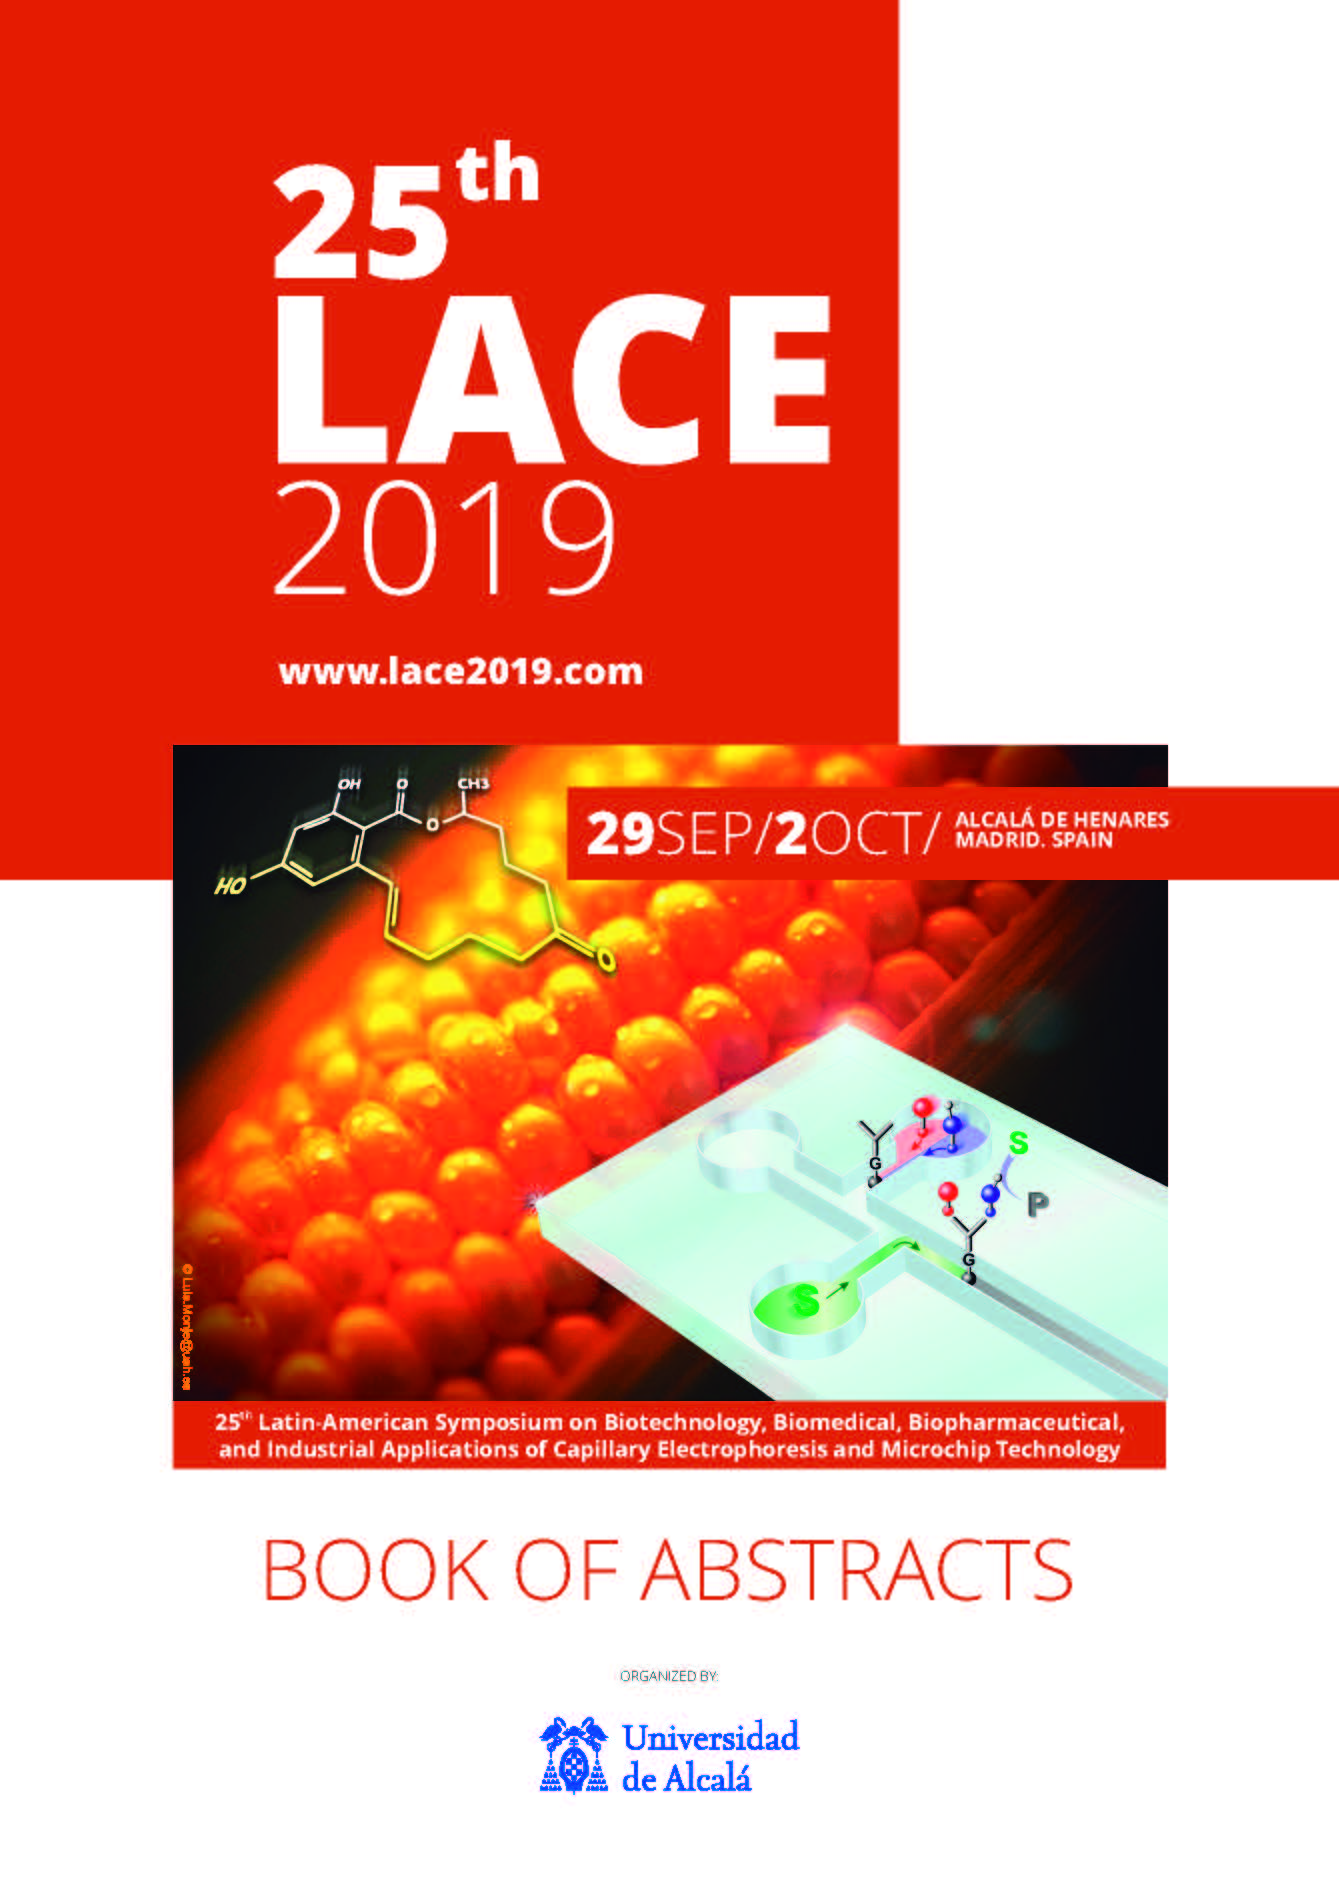 25_LACE_Abstracts_book